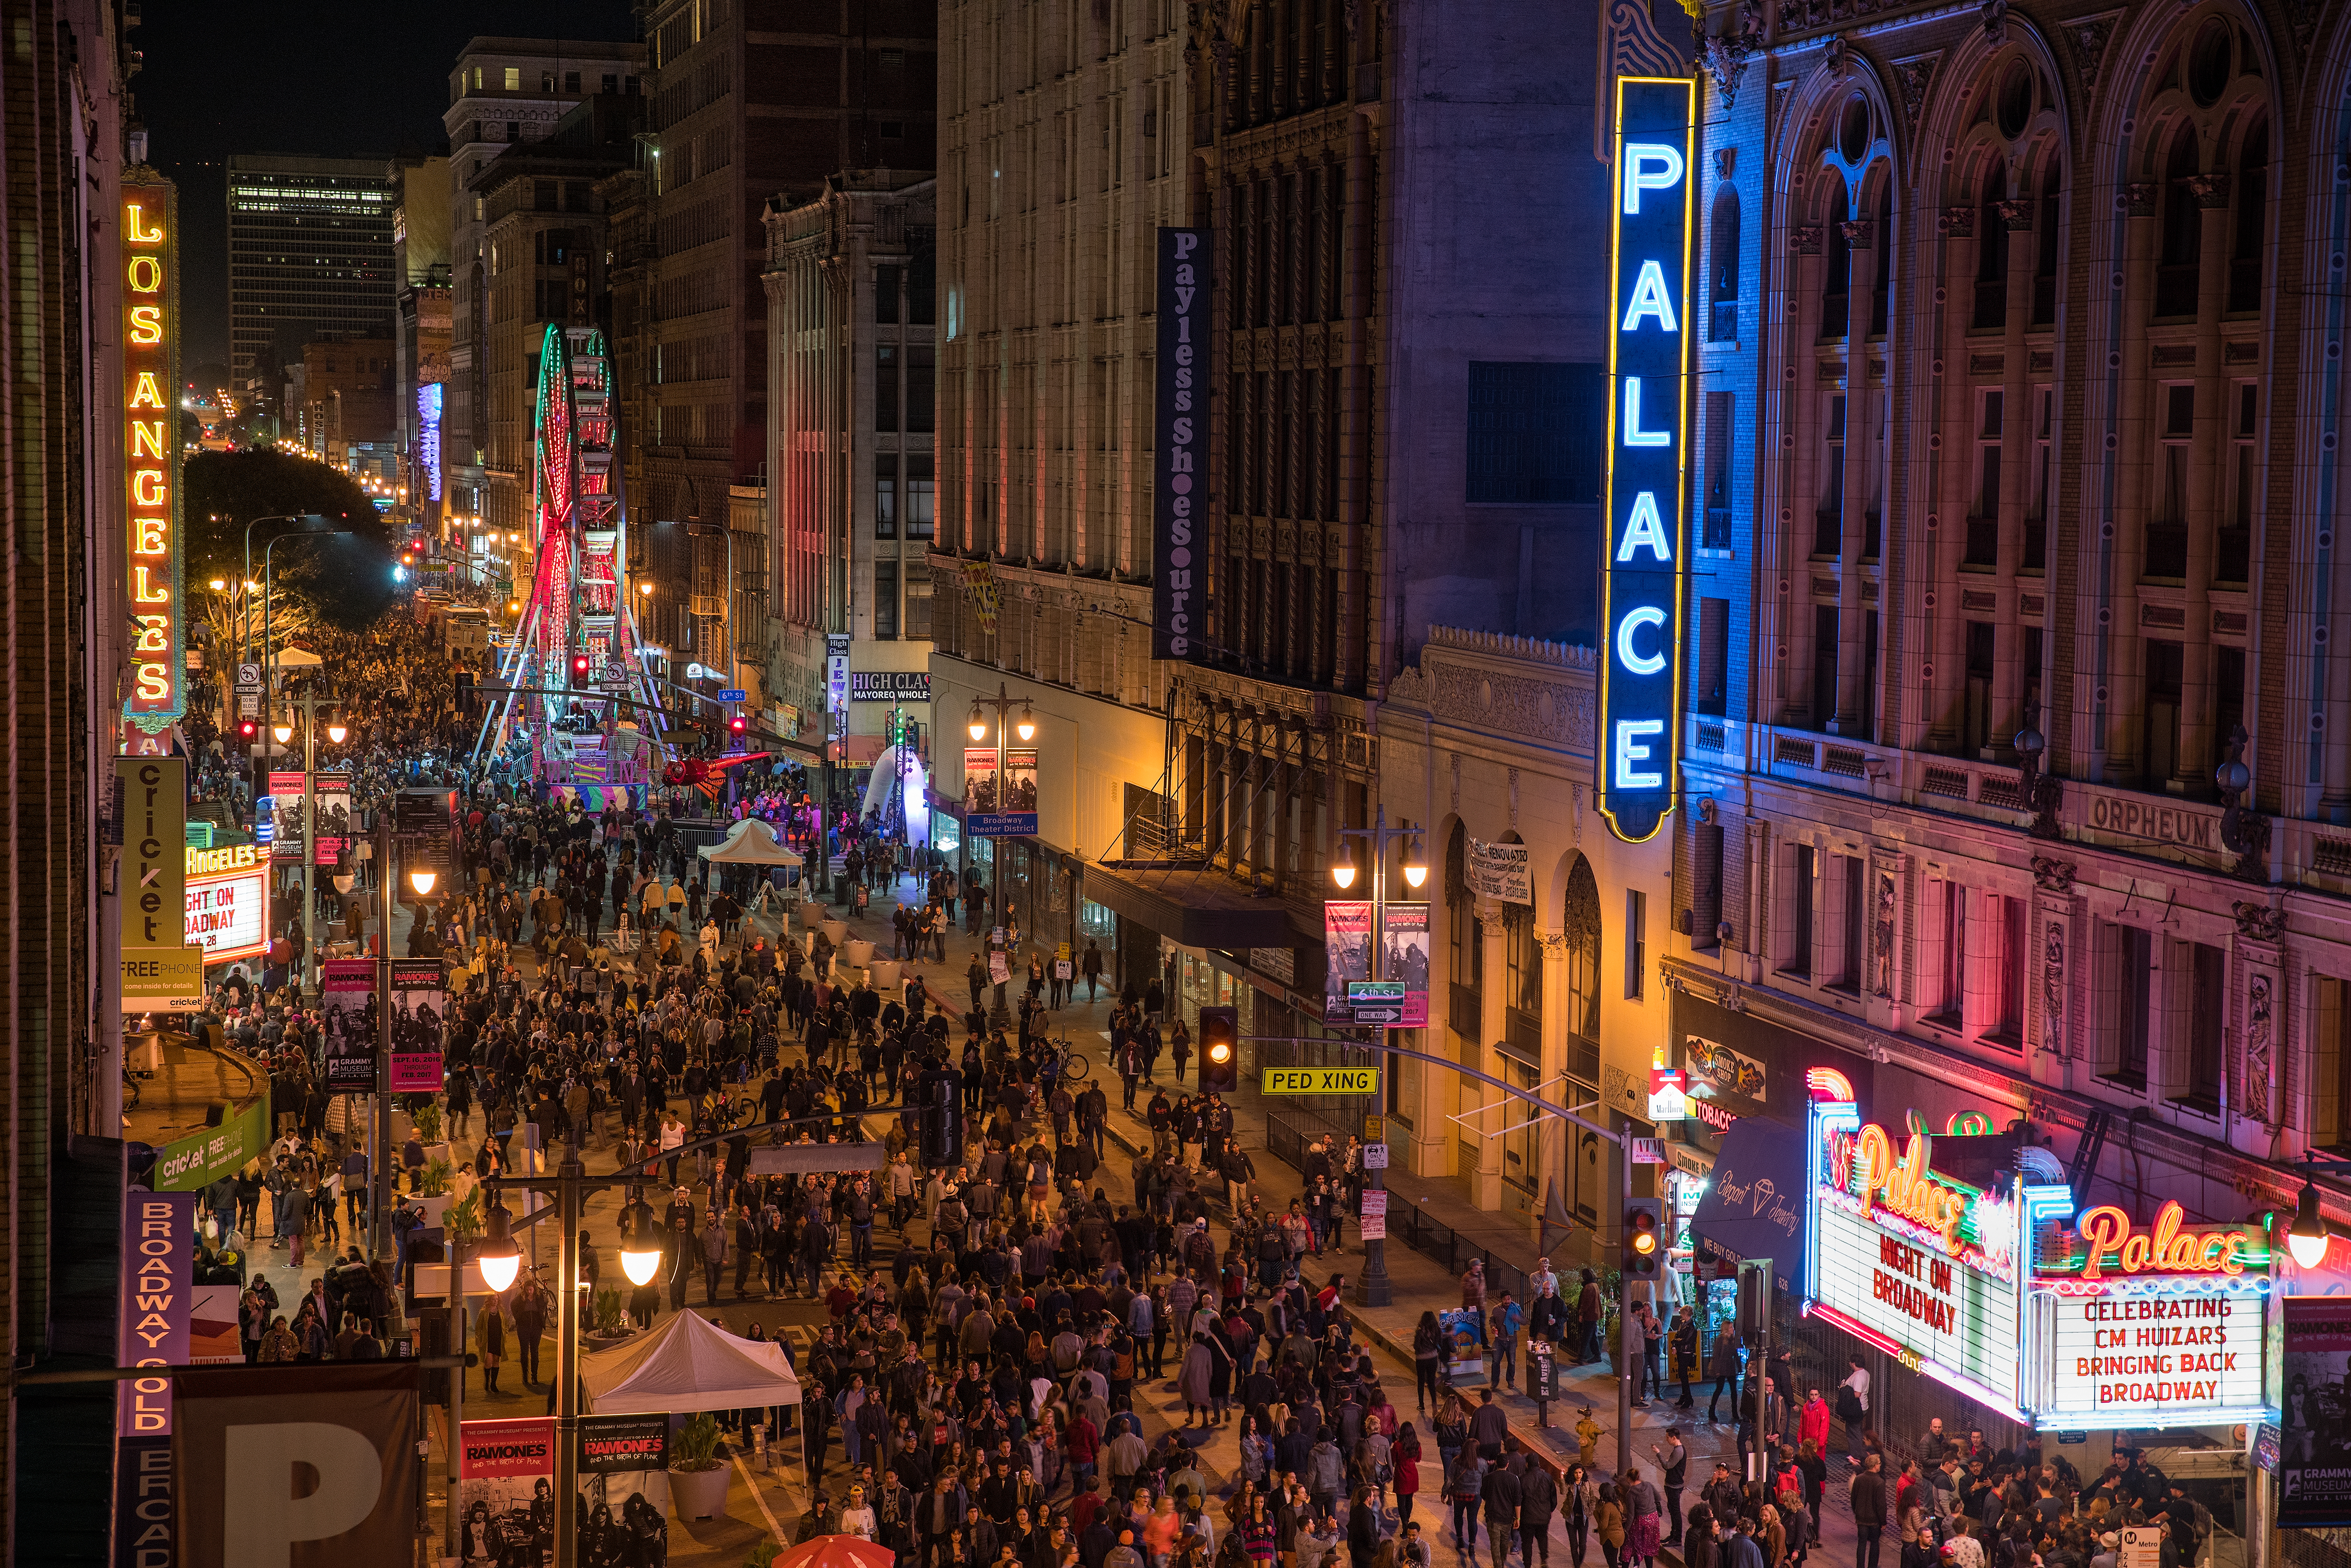 go metro to night on broadway this saturday and get a discount on